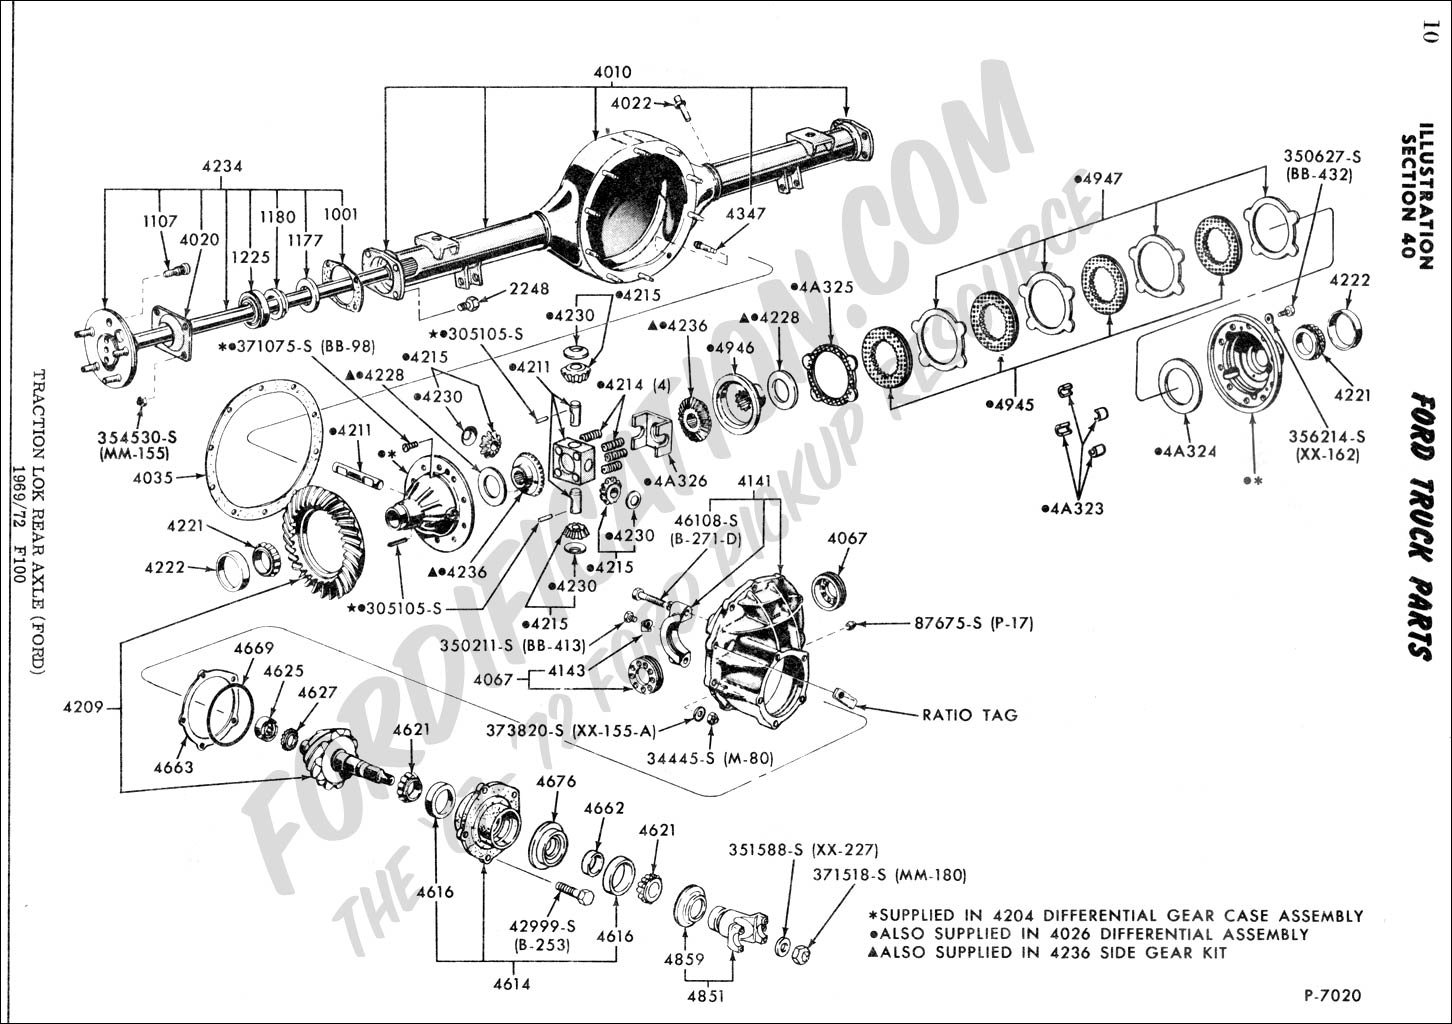 2005 f250 rear differential parts manual